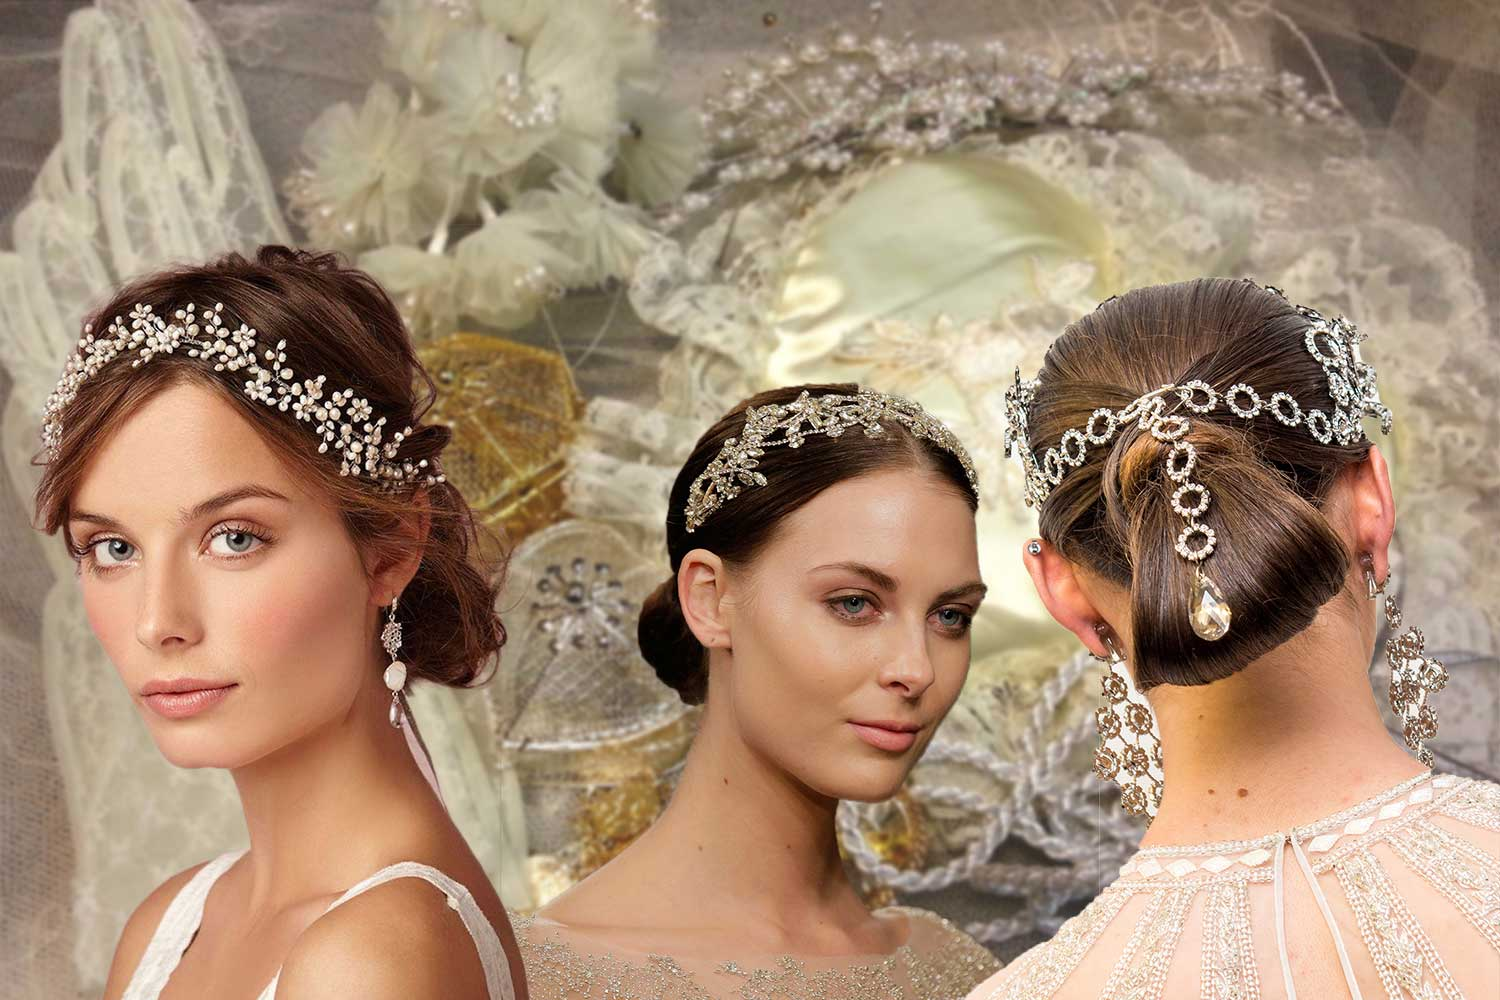 wedding hairstyles & accessories to make you look like a princess